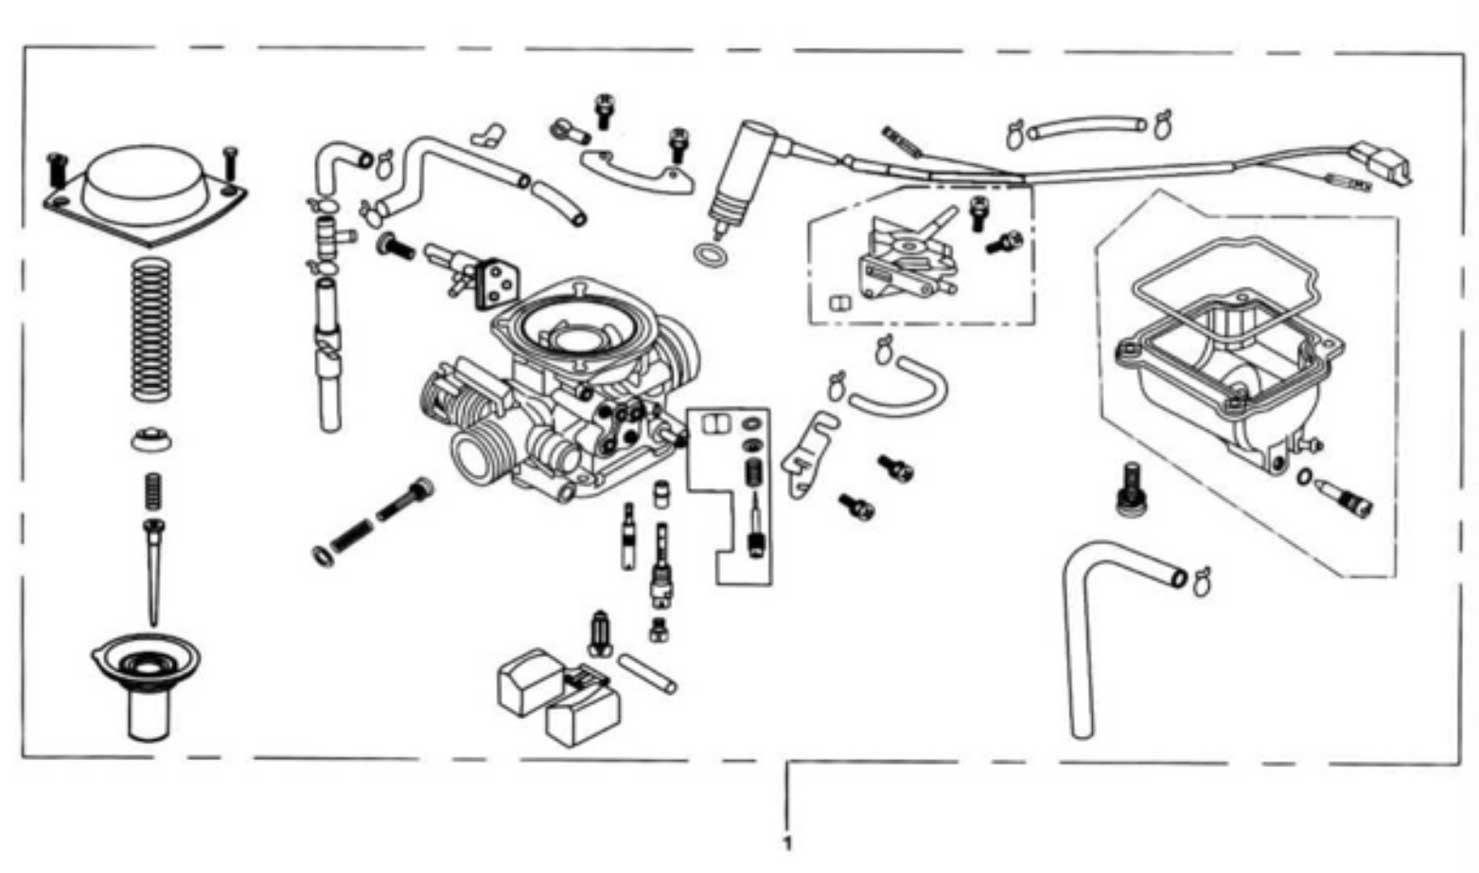 Wiring Diagram For Jonway 150 - Auto Electrical Wiring Diagram on